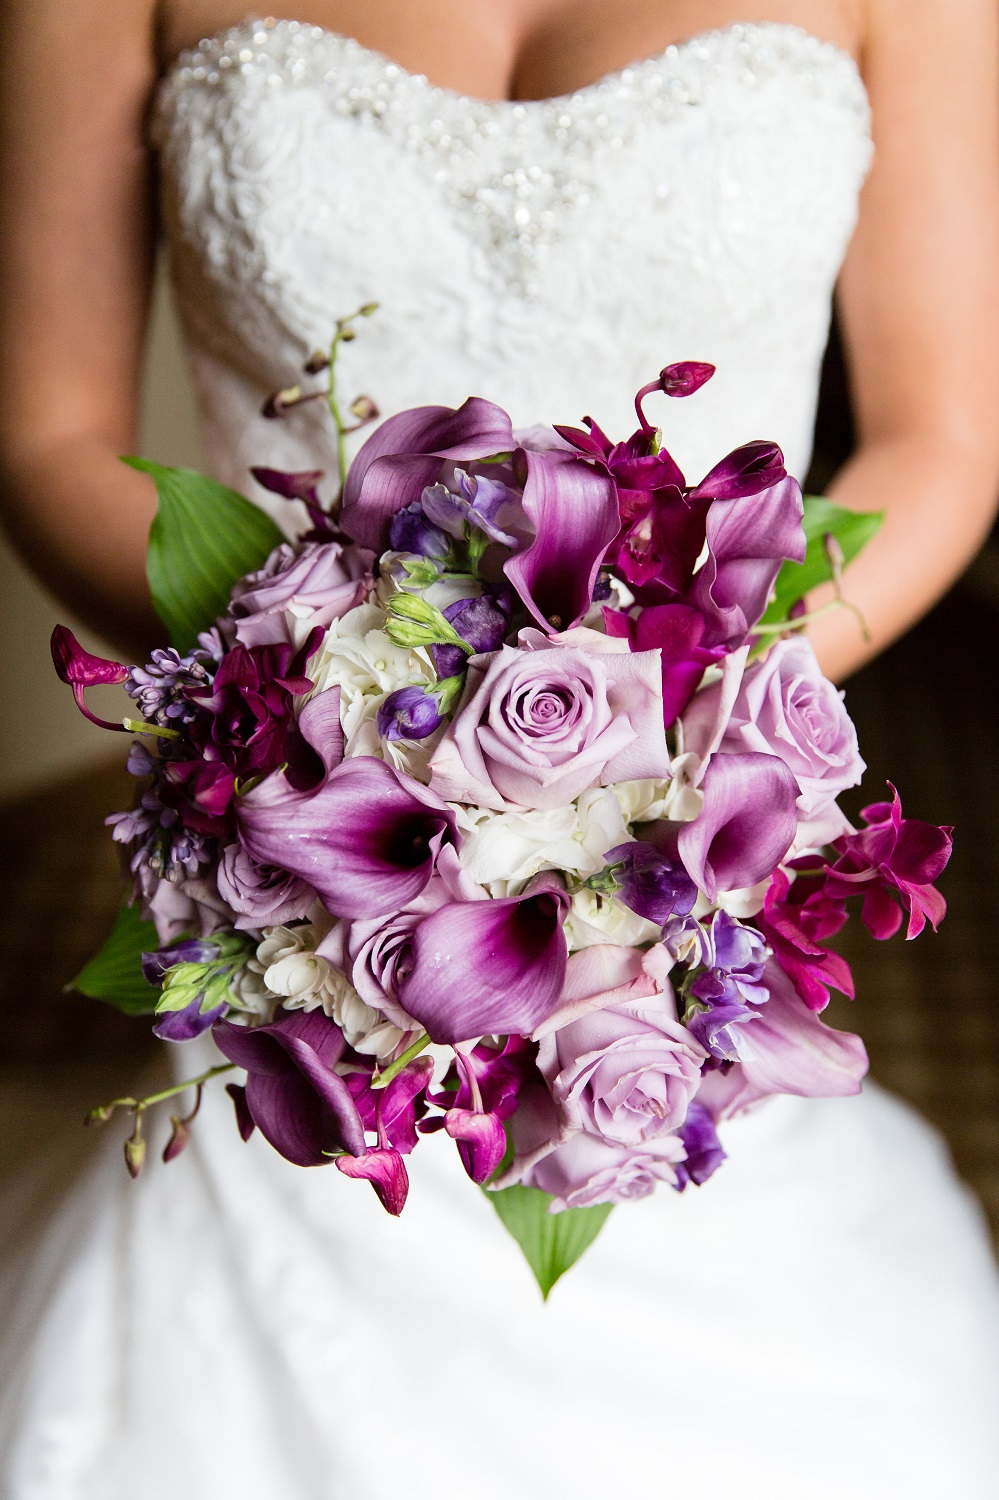 Wedding flowers purple wedding bouquet purple calla lily bouquet wedding flowers purple wedding bouquet purple calla lily bouquet lavender rose bouquet minneapolis purple flowers bridal bouquet purple bouquet izmirmasajfo